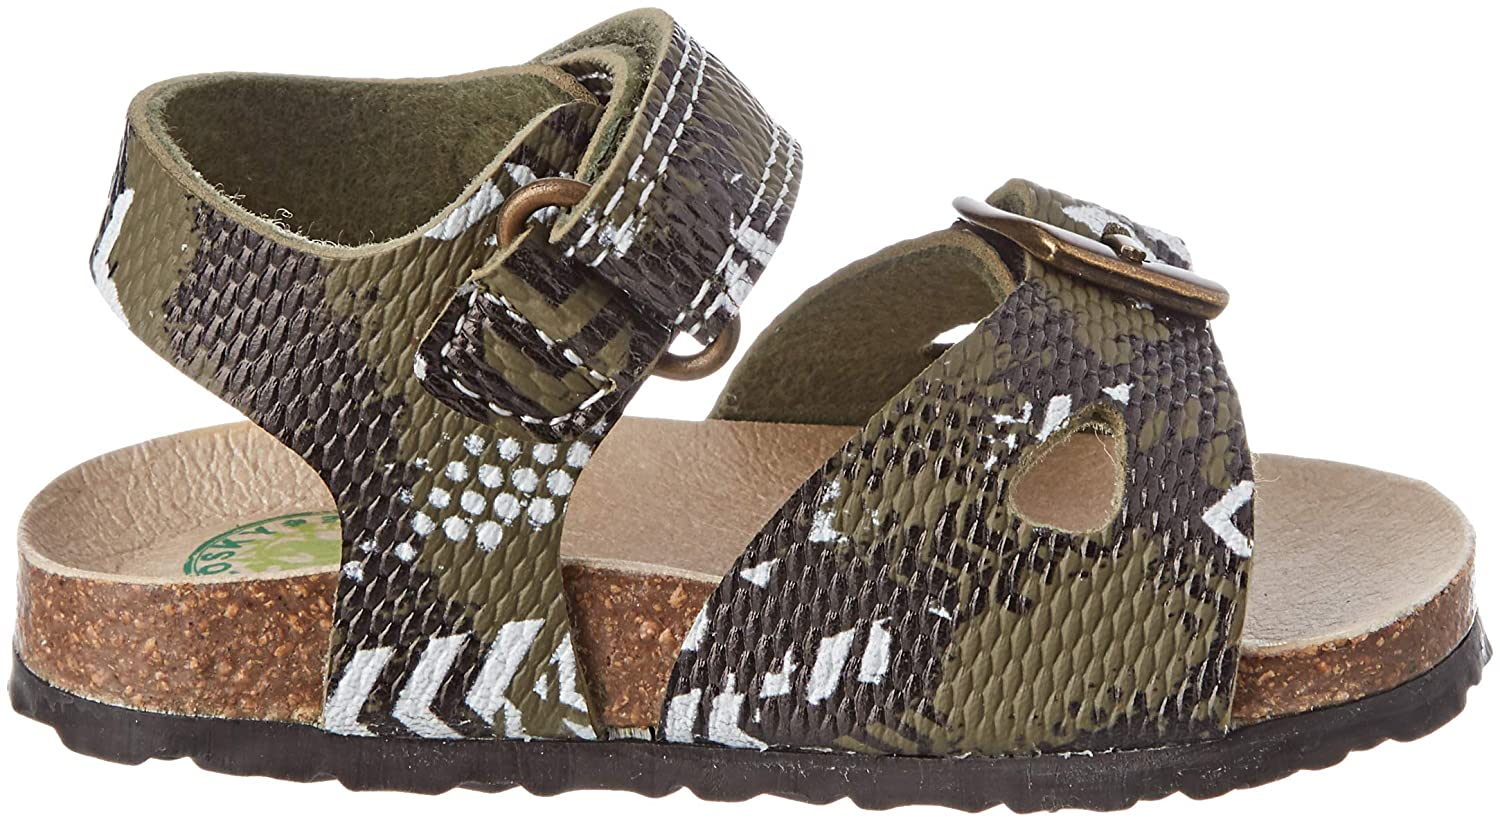 Green Pablosky Boys Open Toe Sandals Verde 590180 4.5 UK